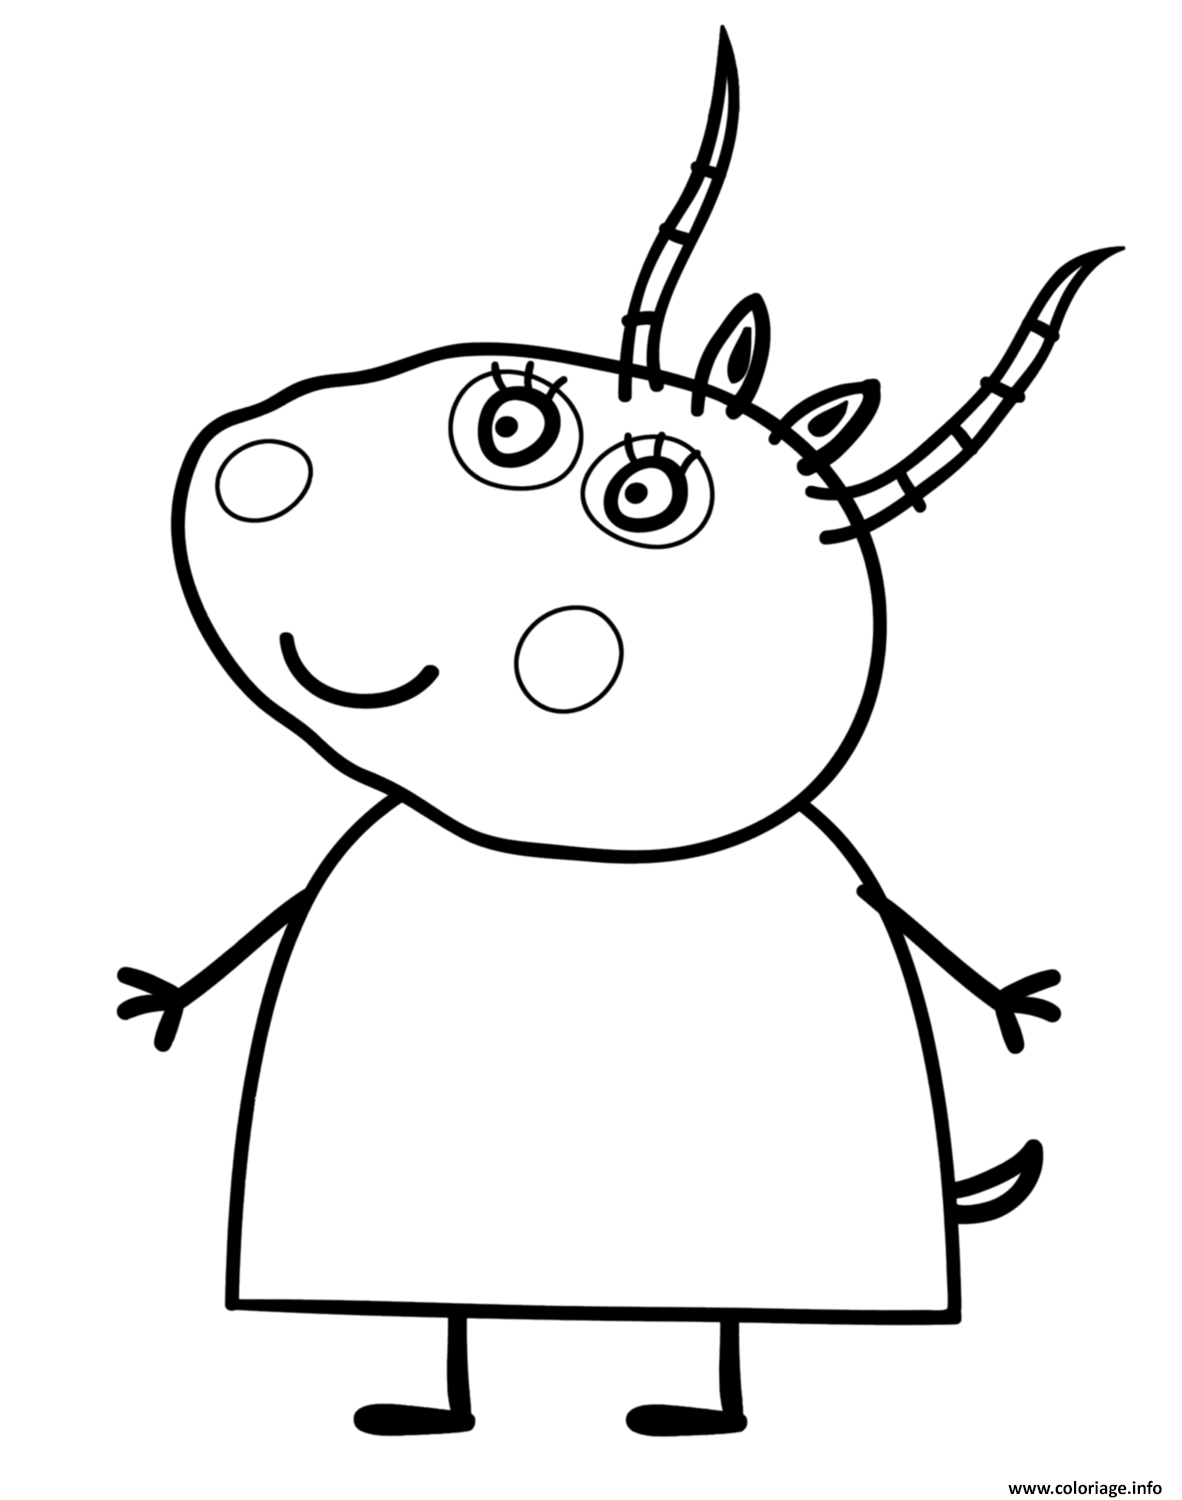 affordable coloriage peppa pig dessin imprimer with coloriage peppa pig